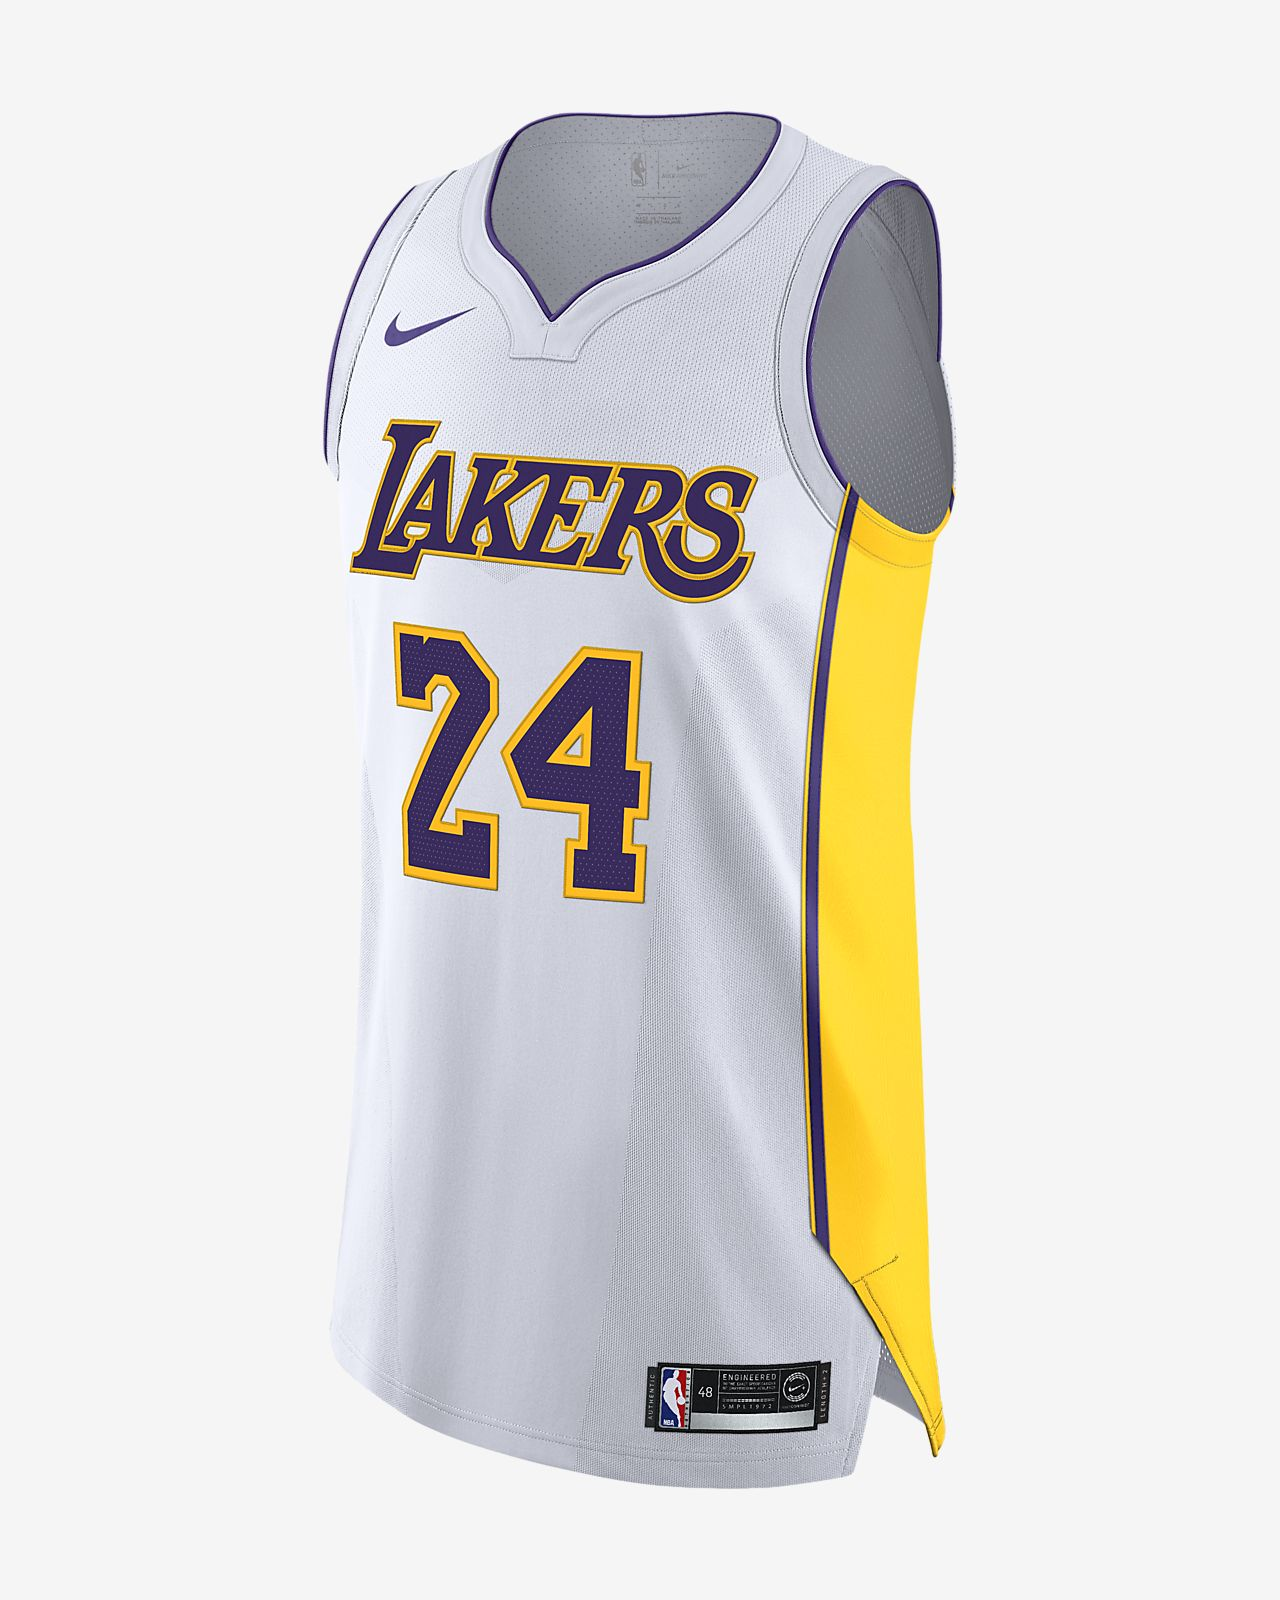 Camiseta conectada Nike NBA para hombre Kobe Bryant Association Edition Authentic (Los Angeles Lakers)